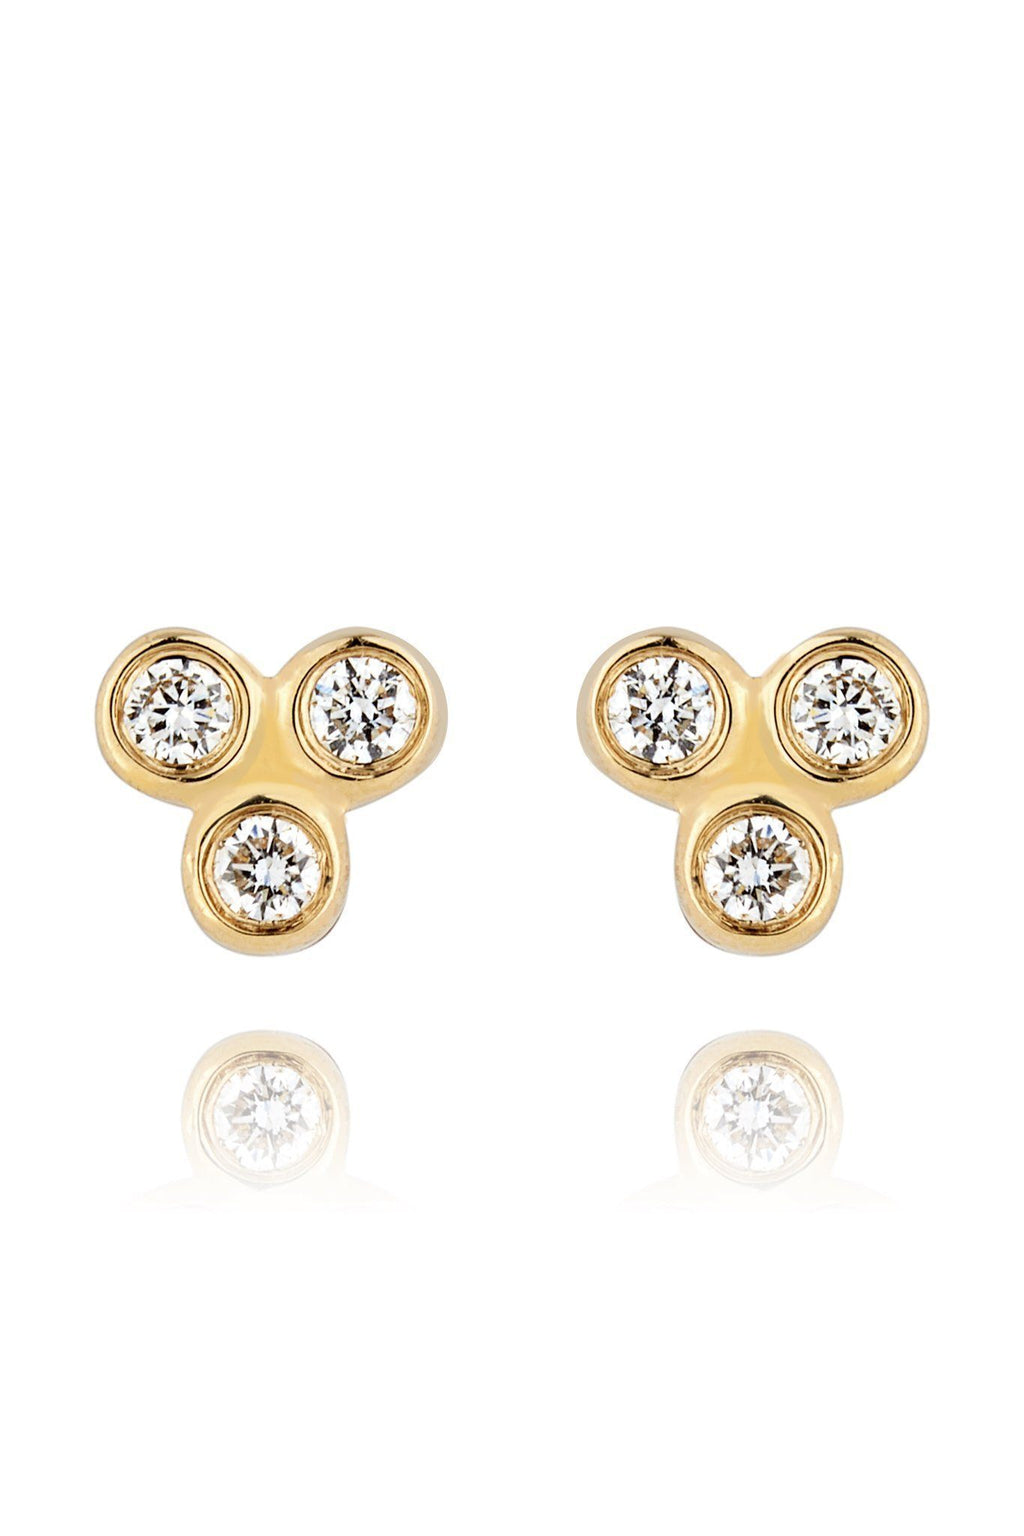 Trinity Diamond Mini Stud Earrings Earrings Lark and Berry Pair Yellow Gold